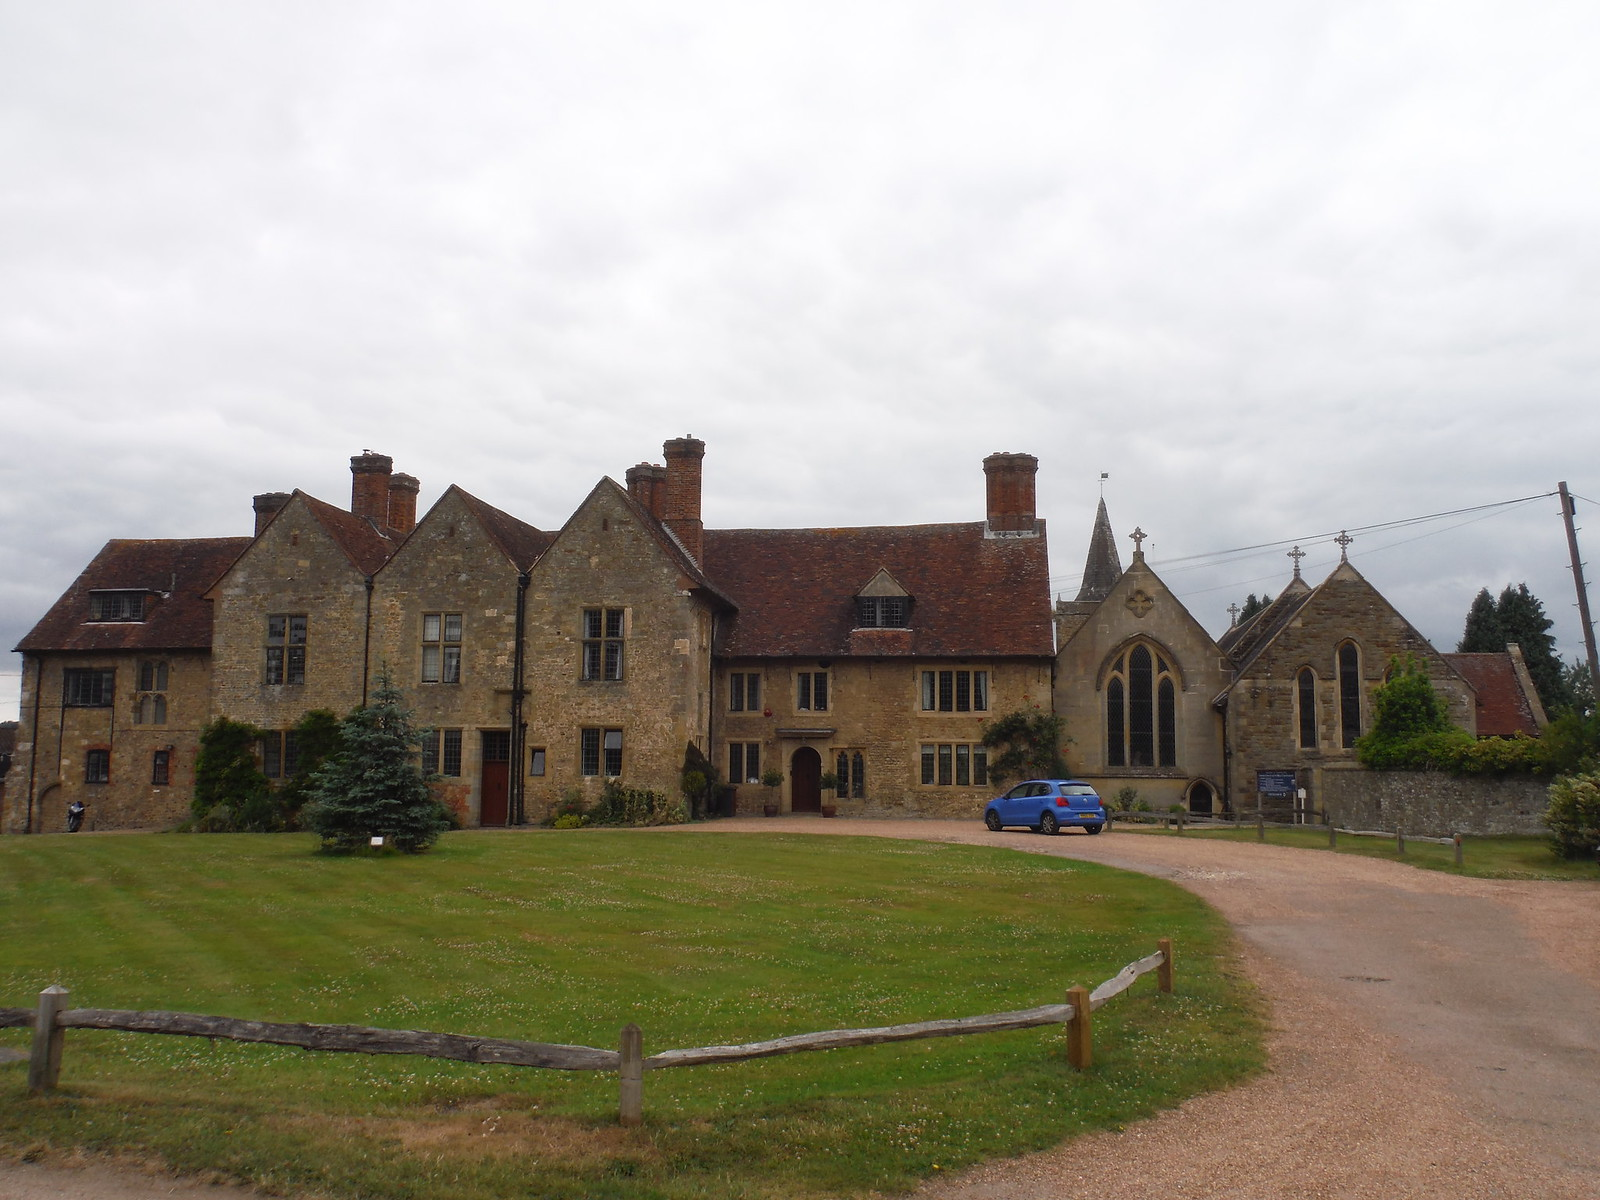 Easebourne Priory, Easebourne SWC Walk 218 Haslemere to Midhurst (The Midhurst Way)